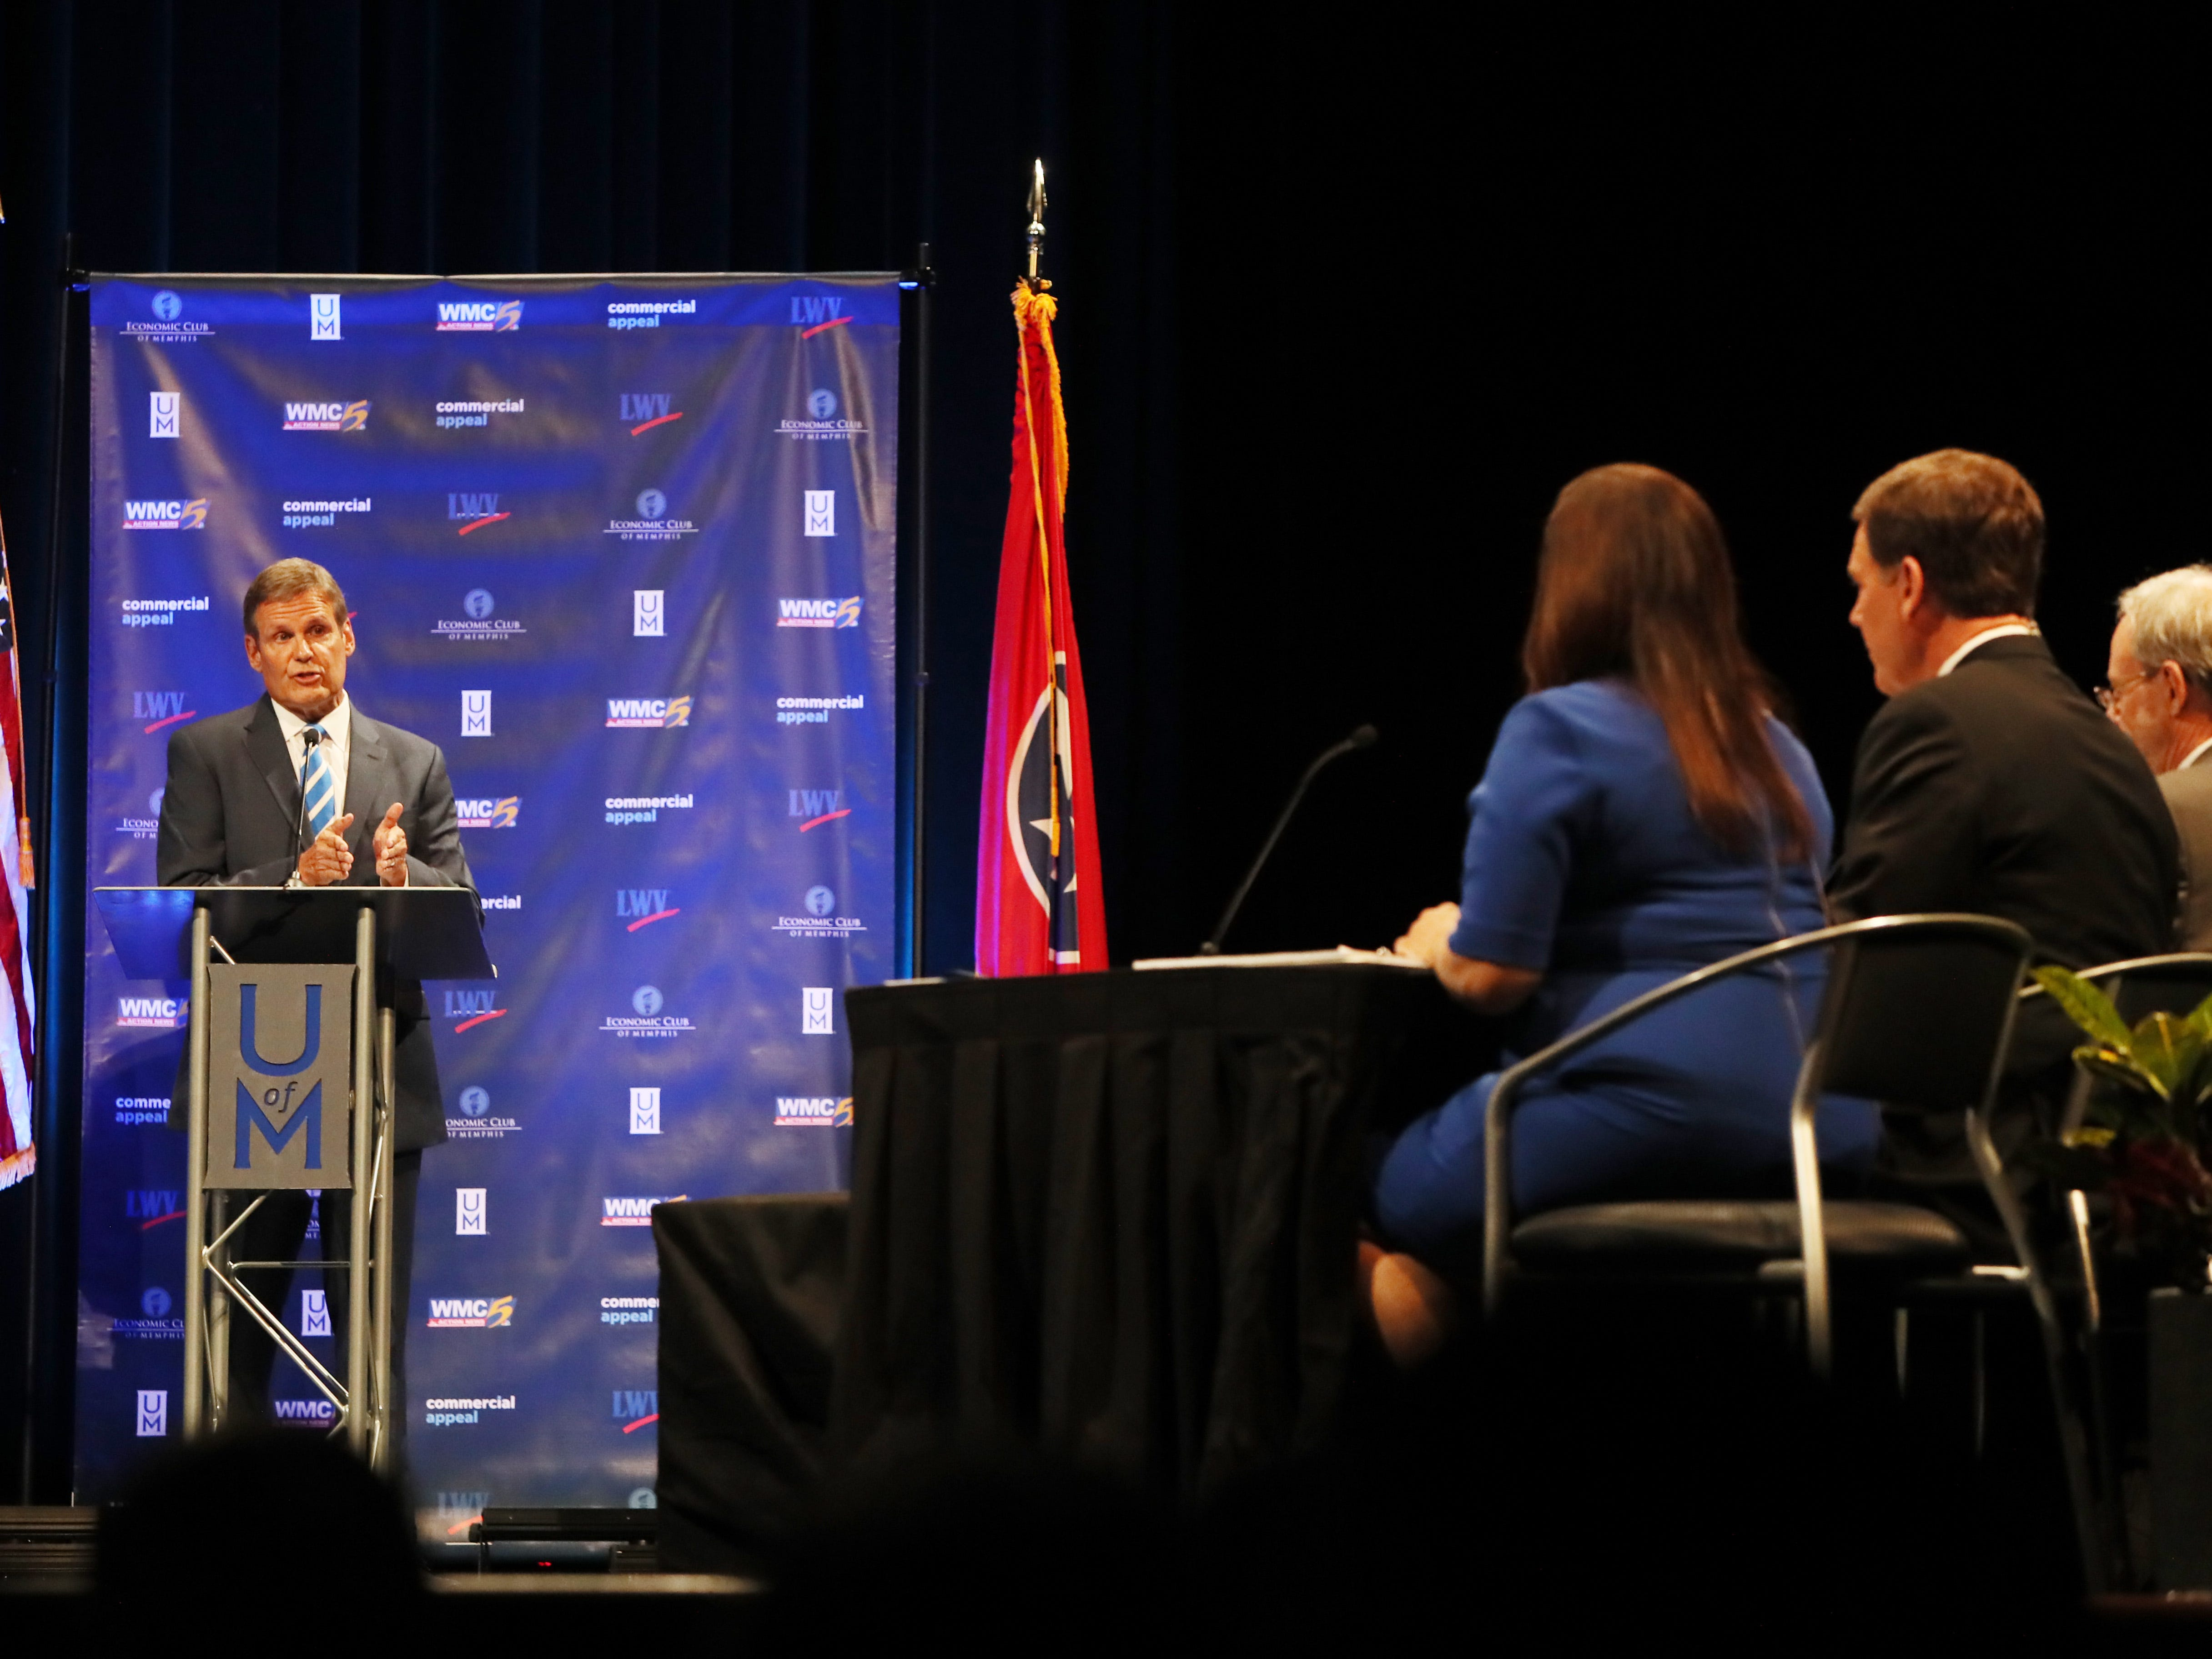 Republican candidate Bill Lee speaks at the gubernatorial debate with Democratic candidate Karl Dean at the University of Memphis' Michael D. Rose Theater in Memphis, Tenn., on Tuesday, Oct. 2, 2018.